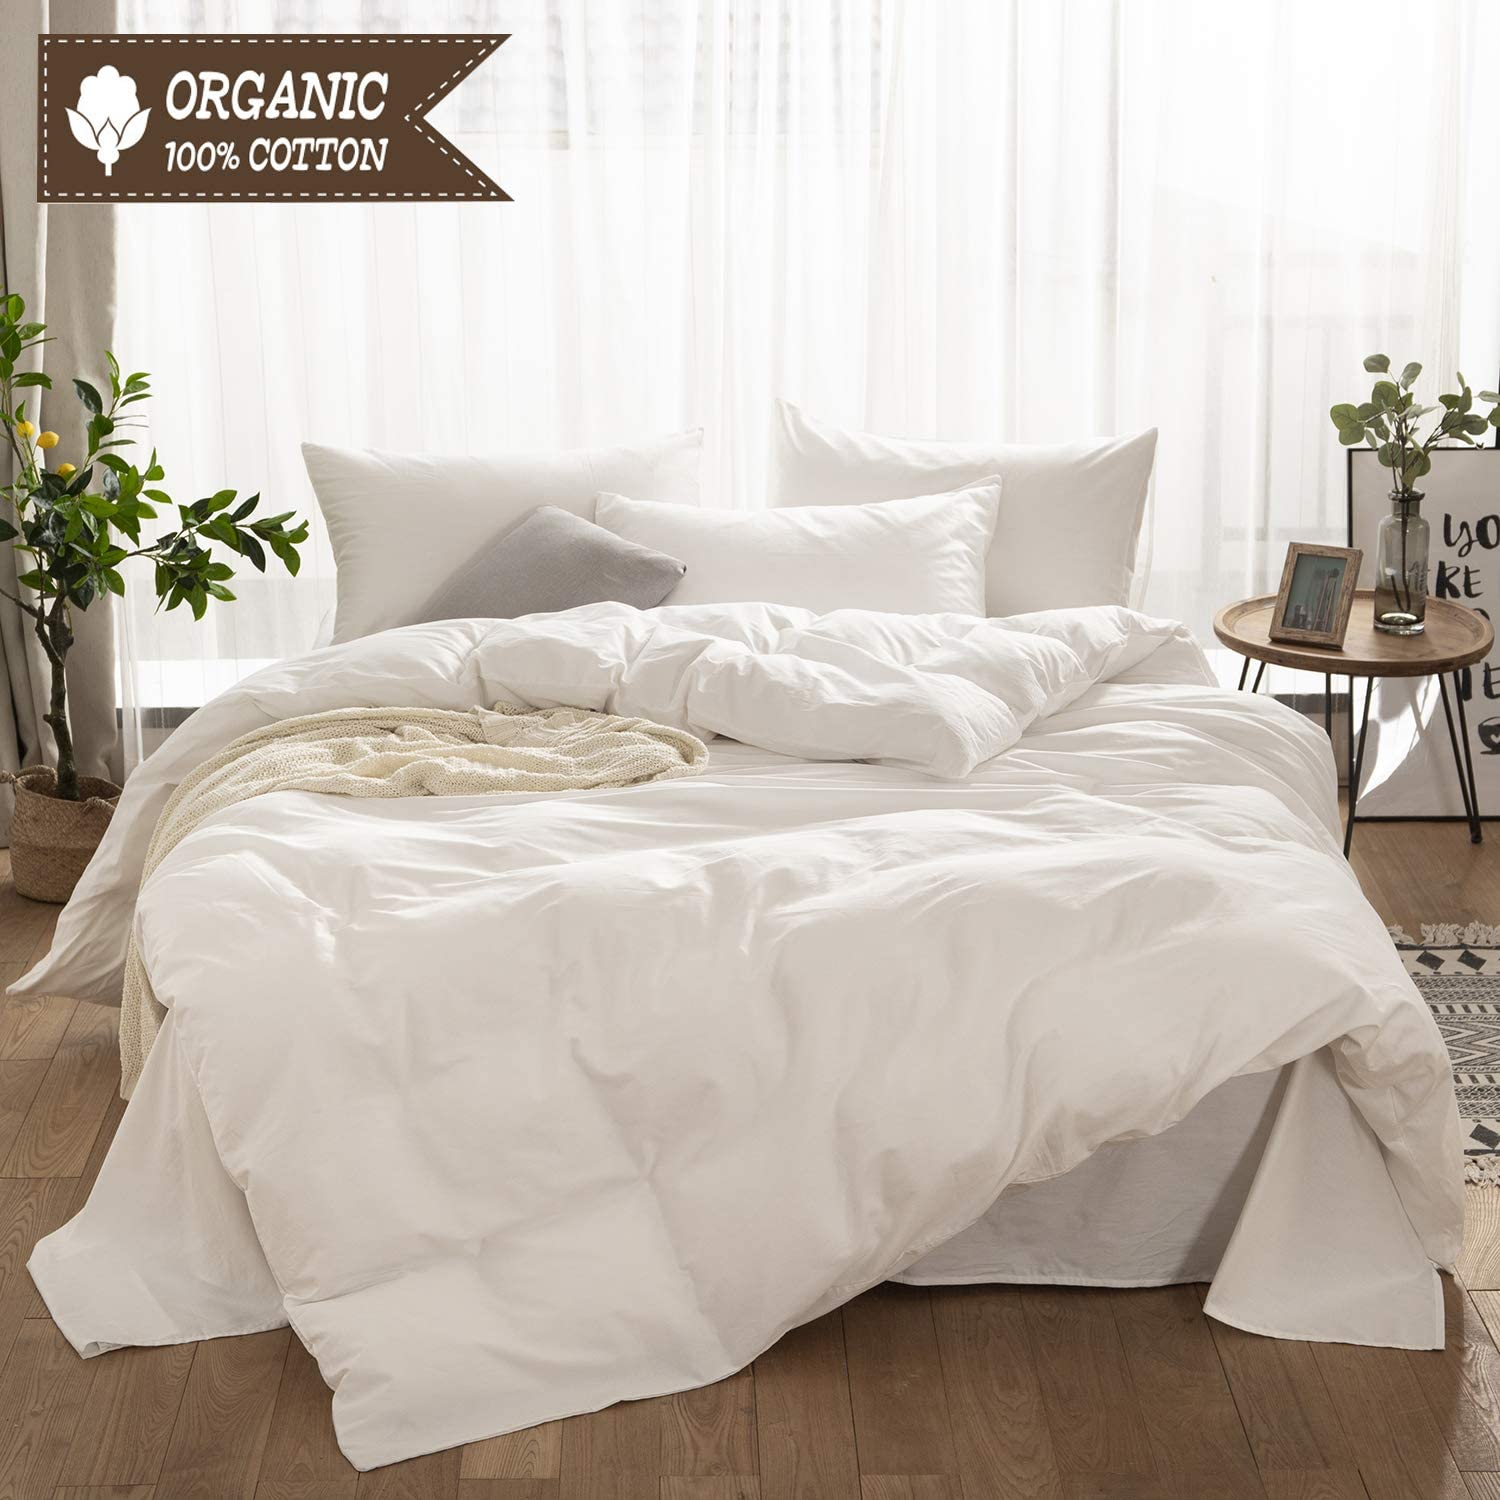 LyTble 3 Pieces Solid Color Ivory White Long Staple Cotton Duvet Cover King Size Soft Breathable Bedding Set with Zipper Ties (Ivory White, King)